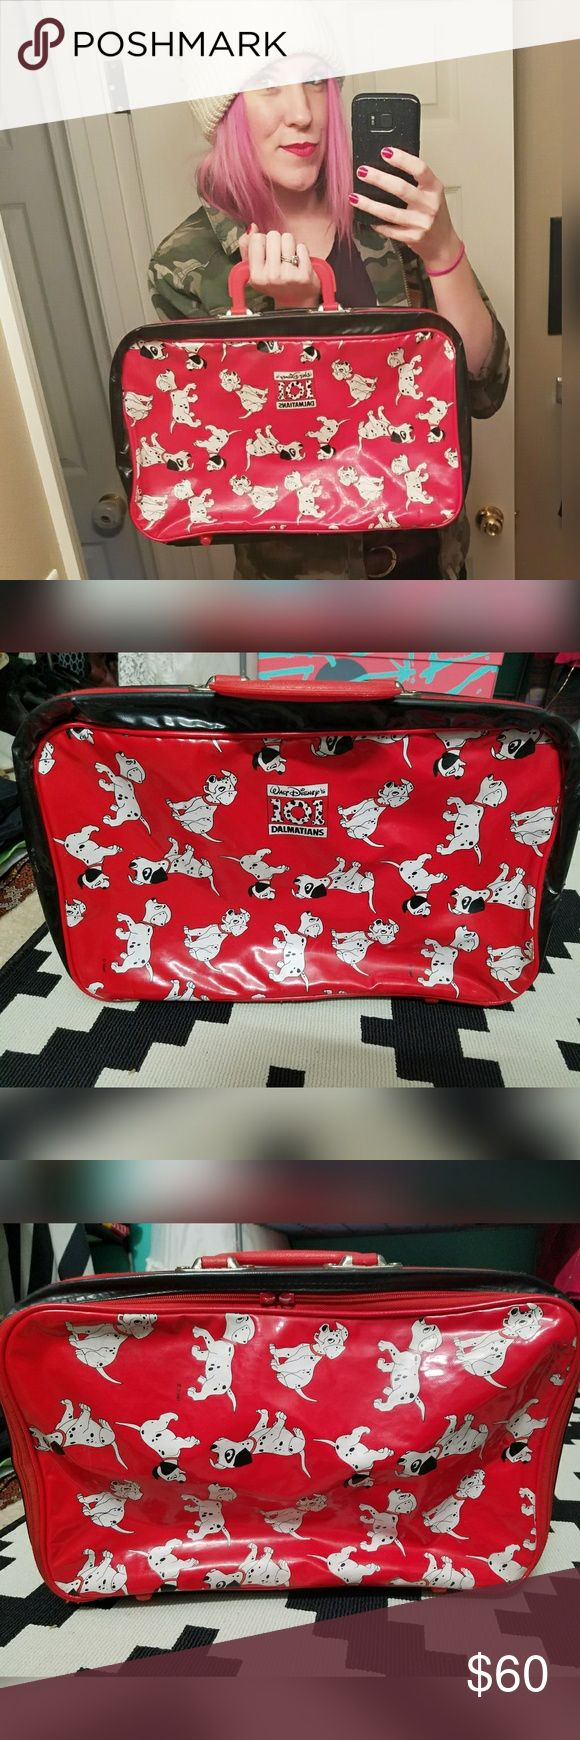 VINTAGE, DISNEY, 101 Dalmatians, kid's suitcase!! This is so great!  Disney, 101 Dalmatians, vinyl, kid's overnight bag. In good vintage condition. Some rust on hardware. Zipper pulls are missing but still zips up. Some marks on vinyl. Nothing major. Disney Bags Travel Bags